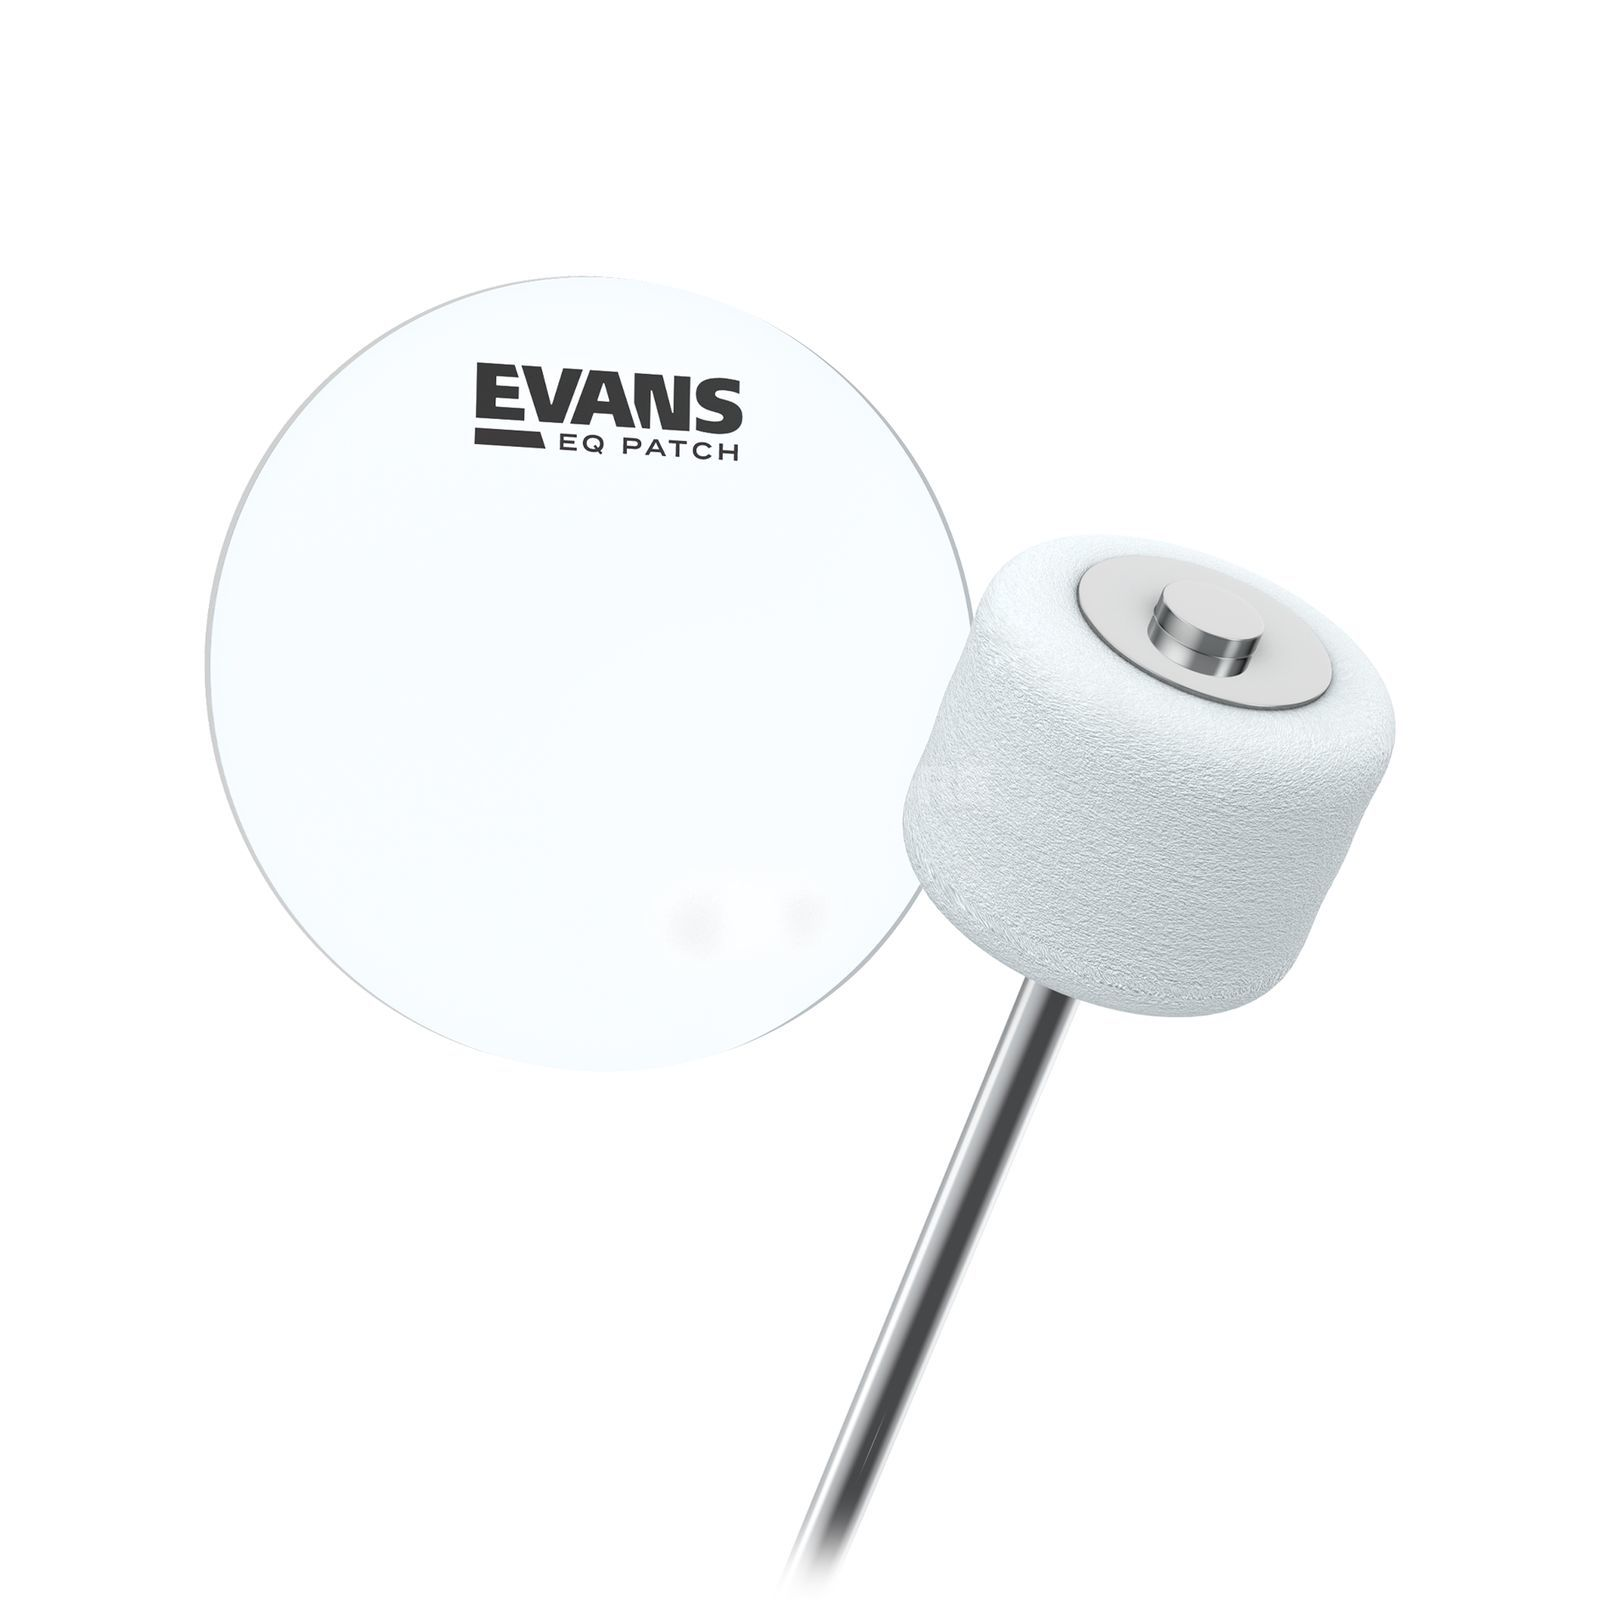 Evans EQ Patch EQPC1 basDrum Patch, voor eenzelpedaal Productafbeelding